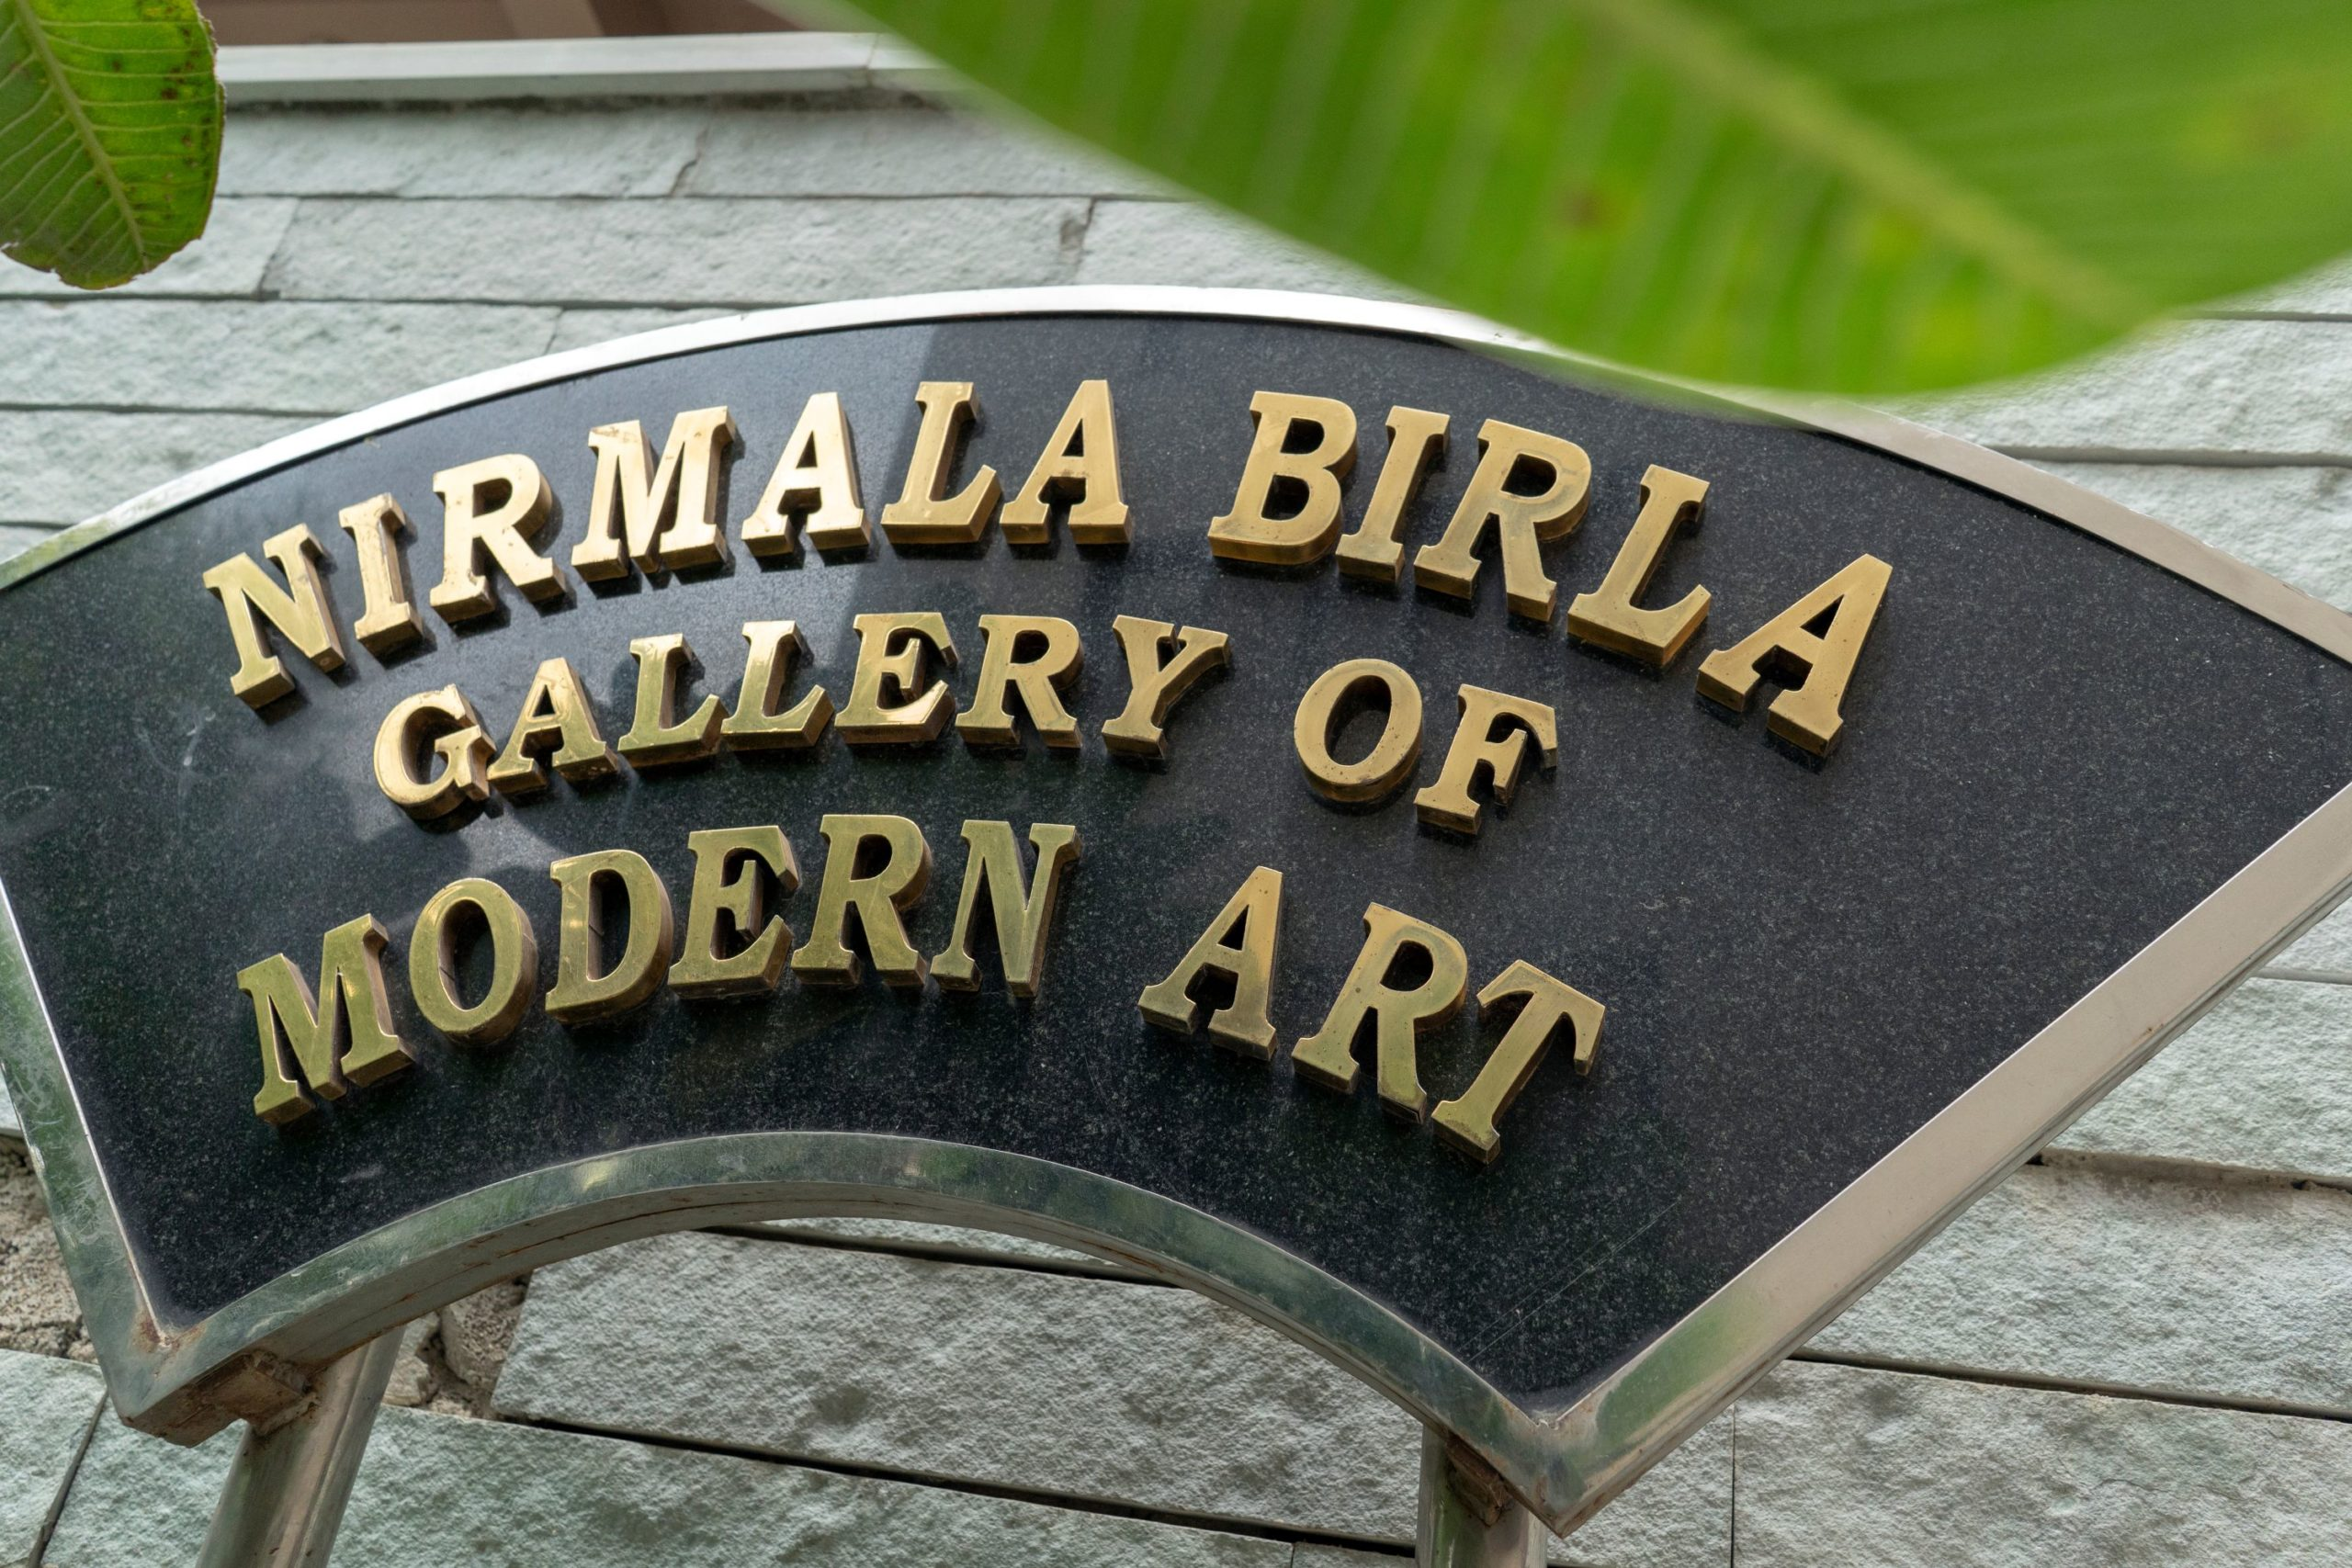 Nirmala Birla Gallery of Modern Art